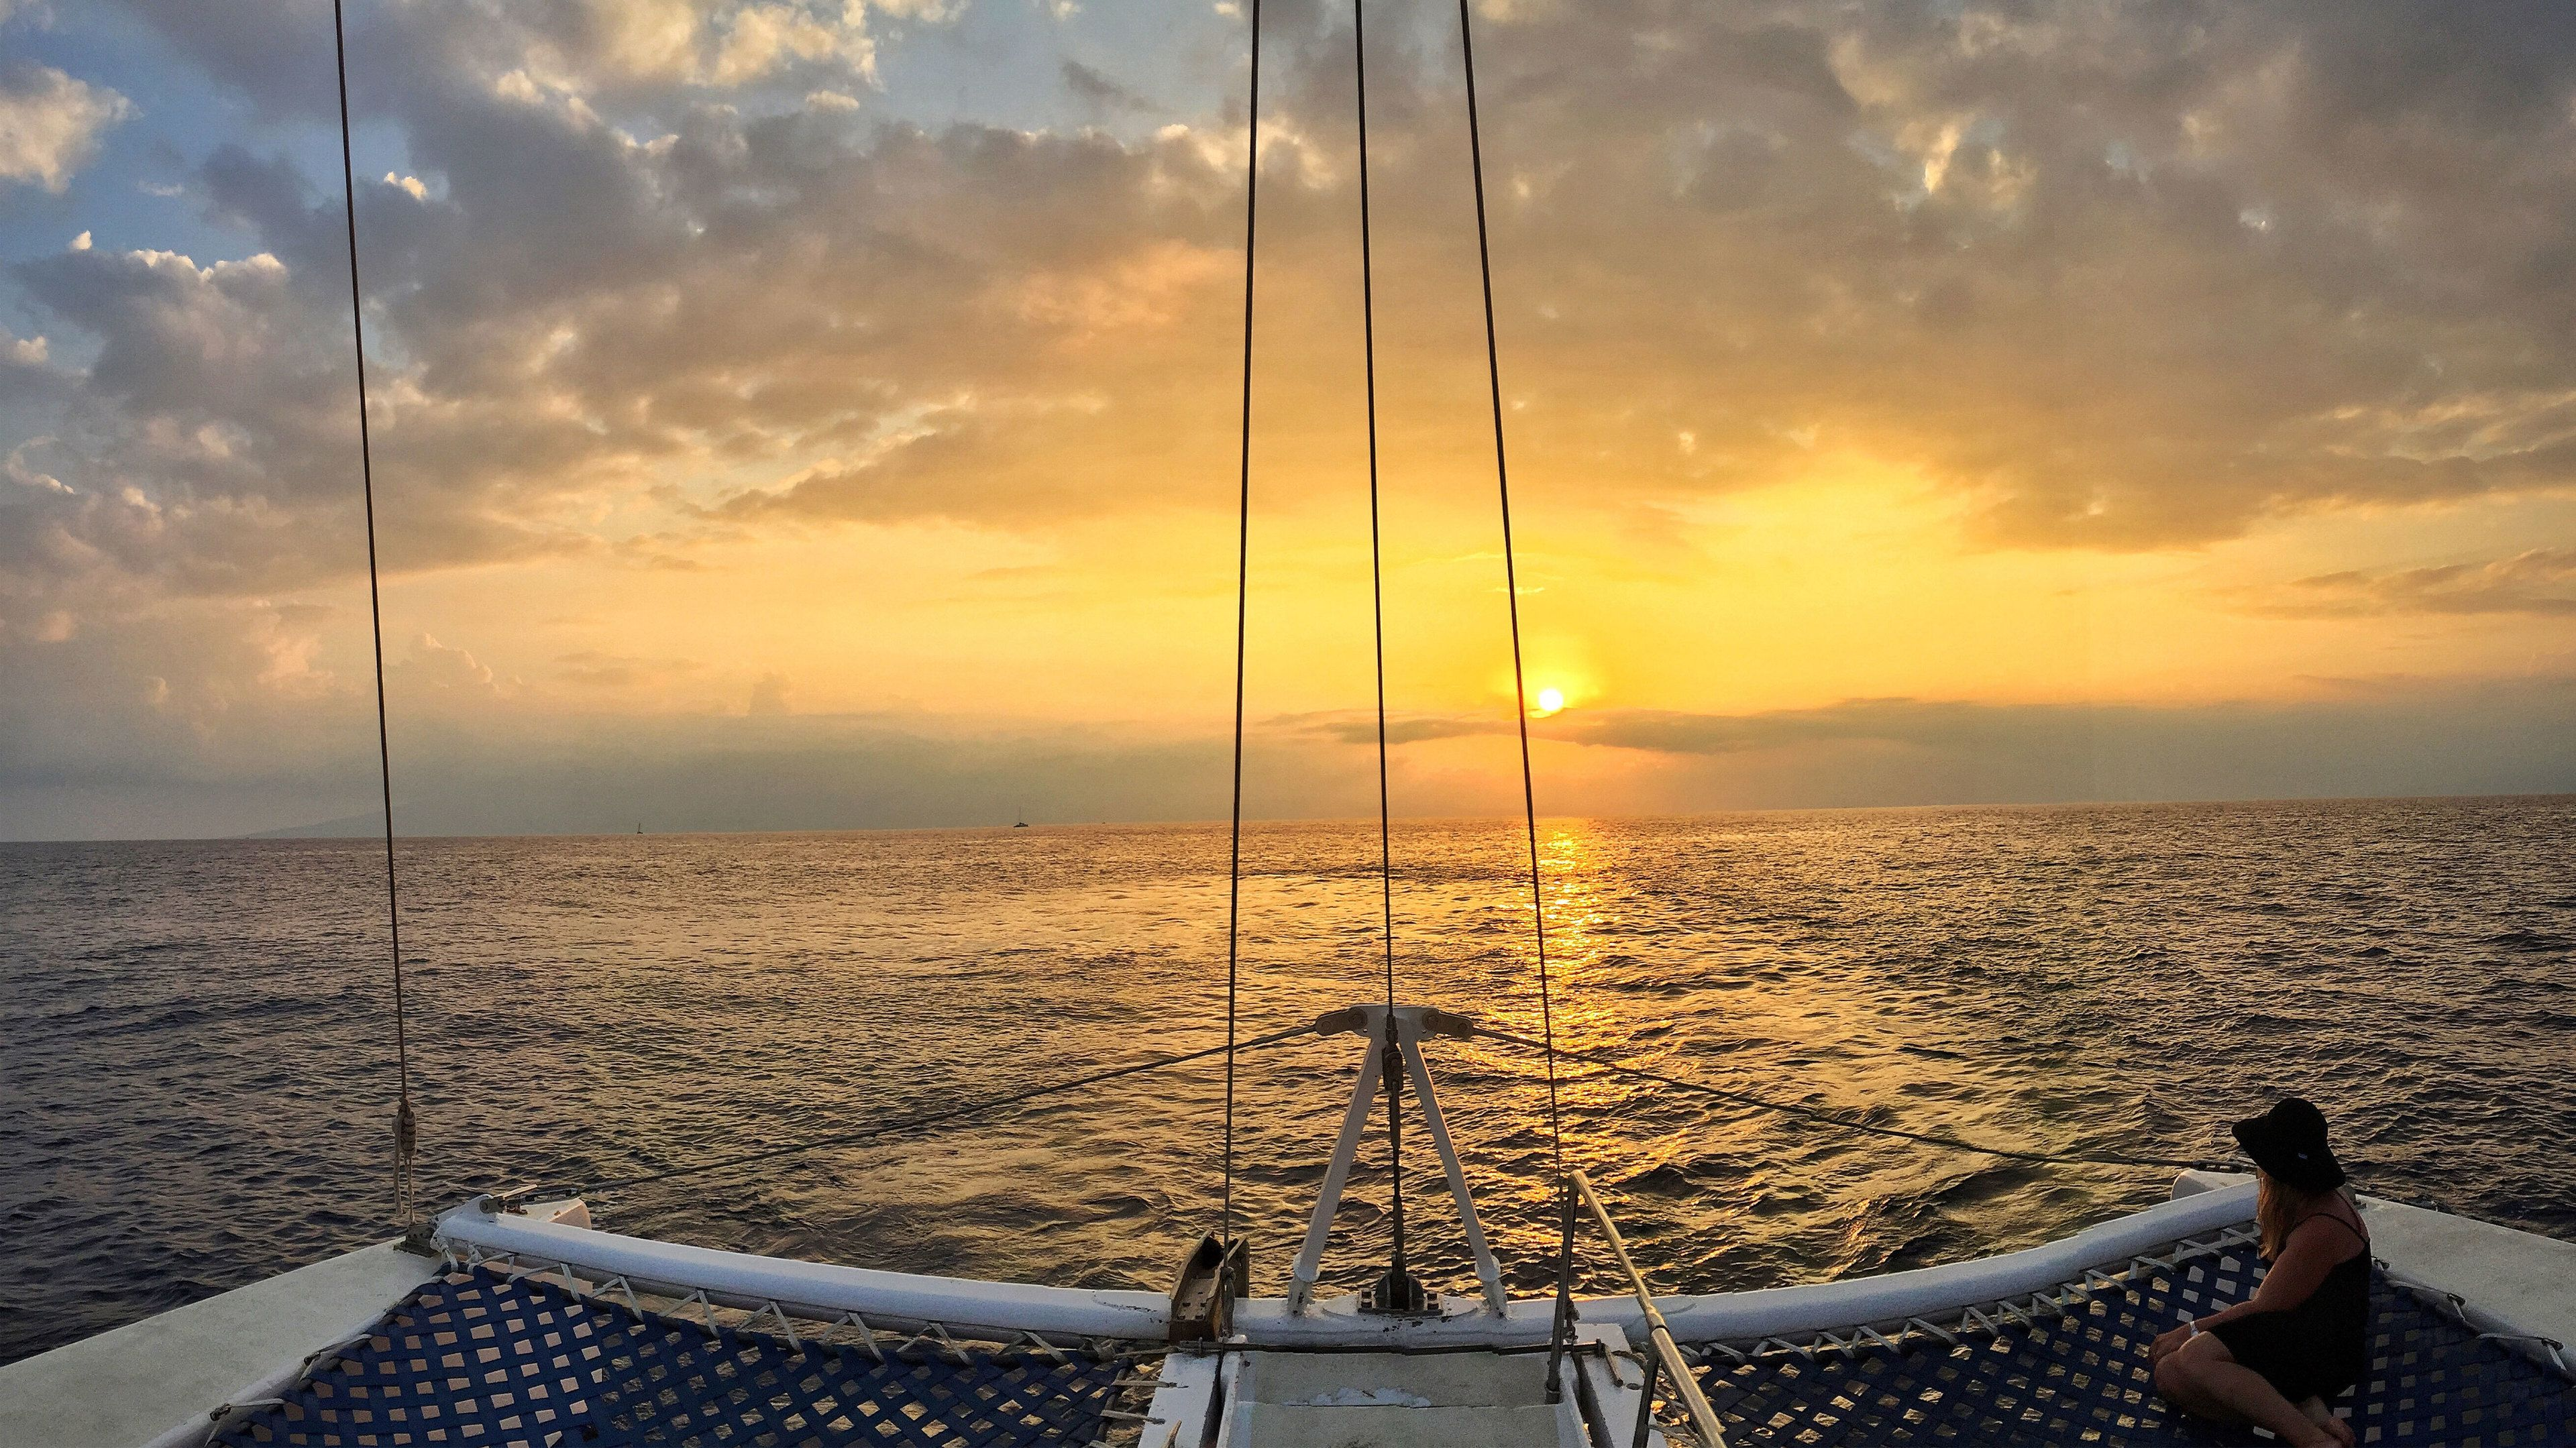 Sunset Cruise with Live Entertainment